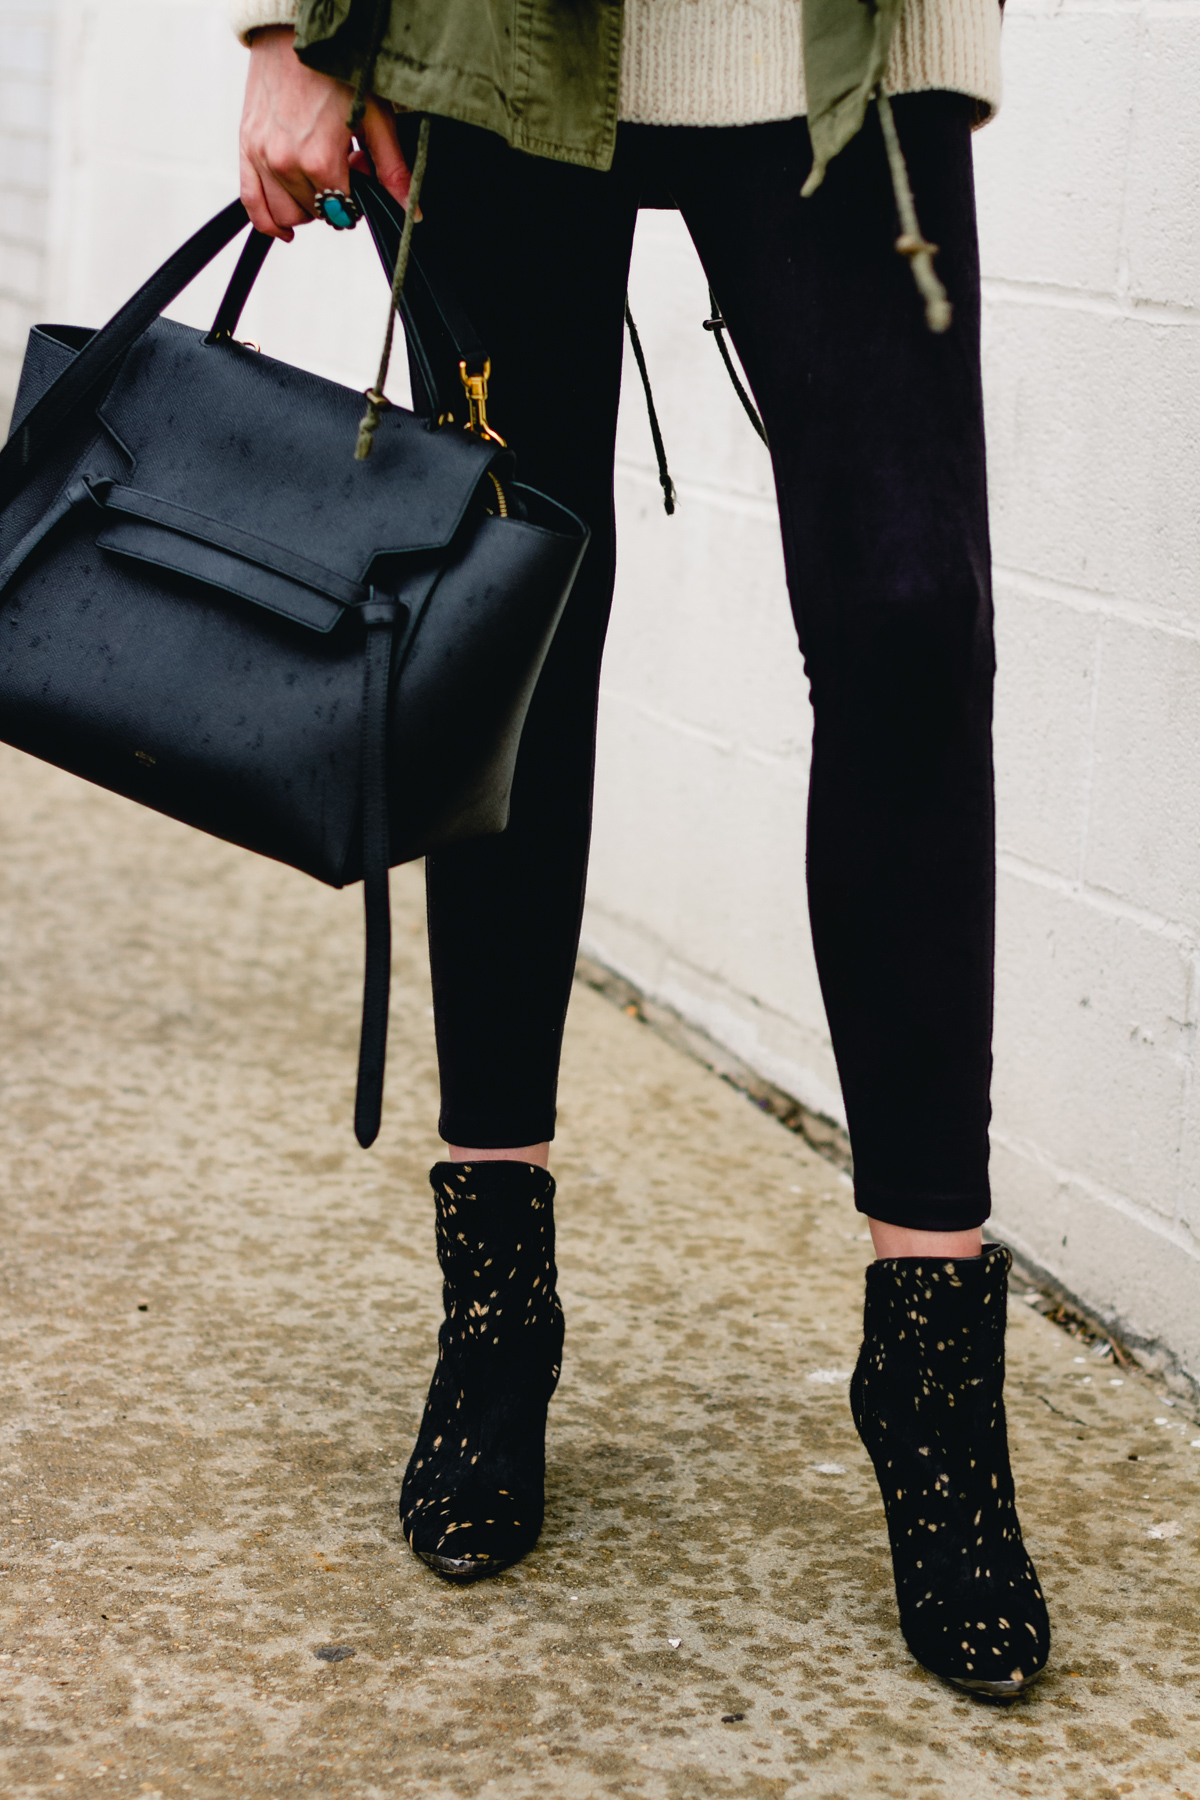 Celine bag, suede leggings, and Sigerson Morrison boots